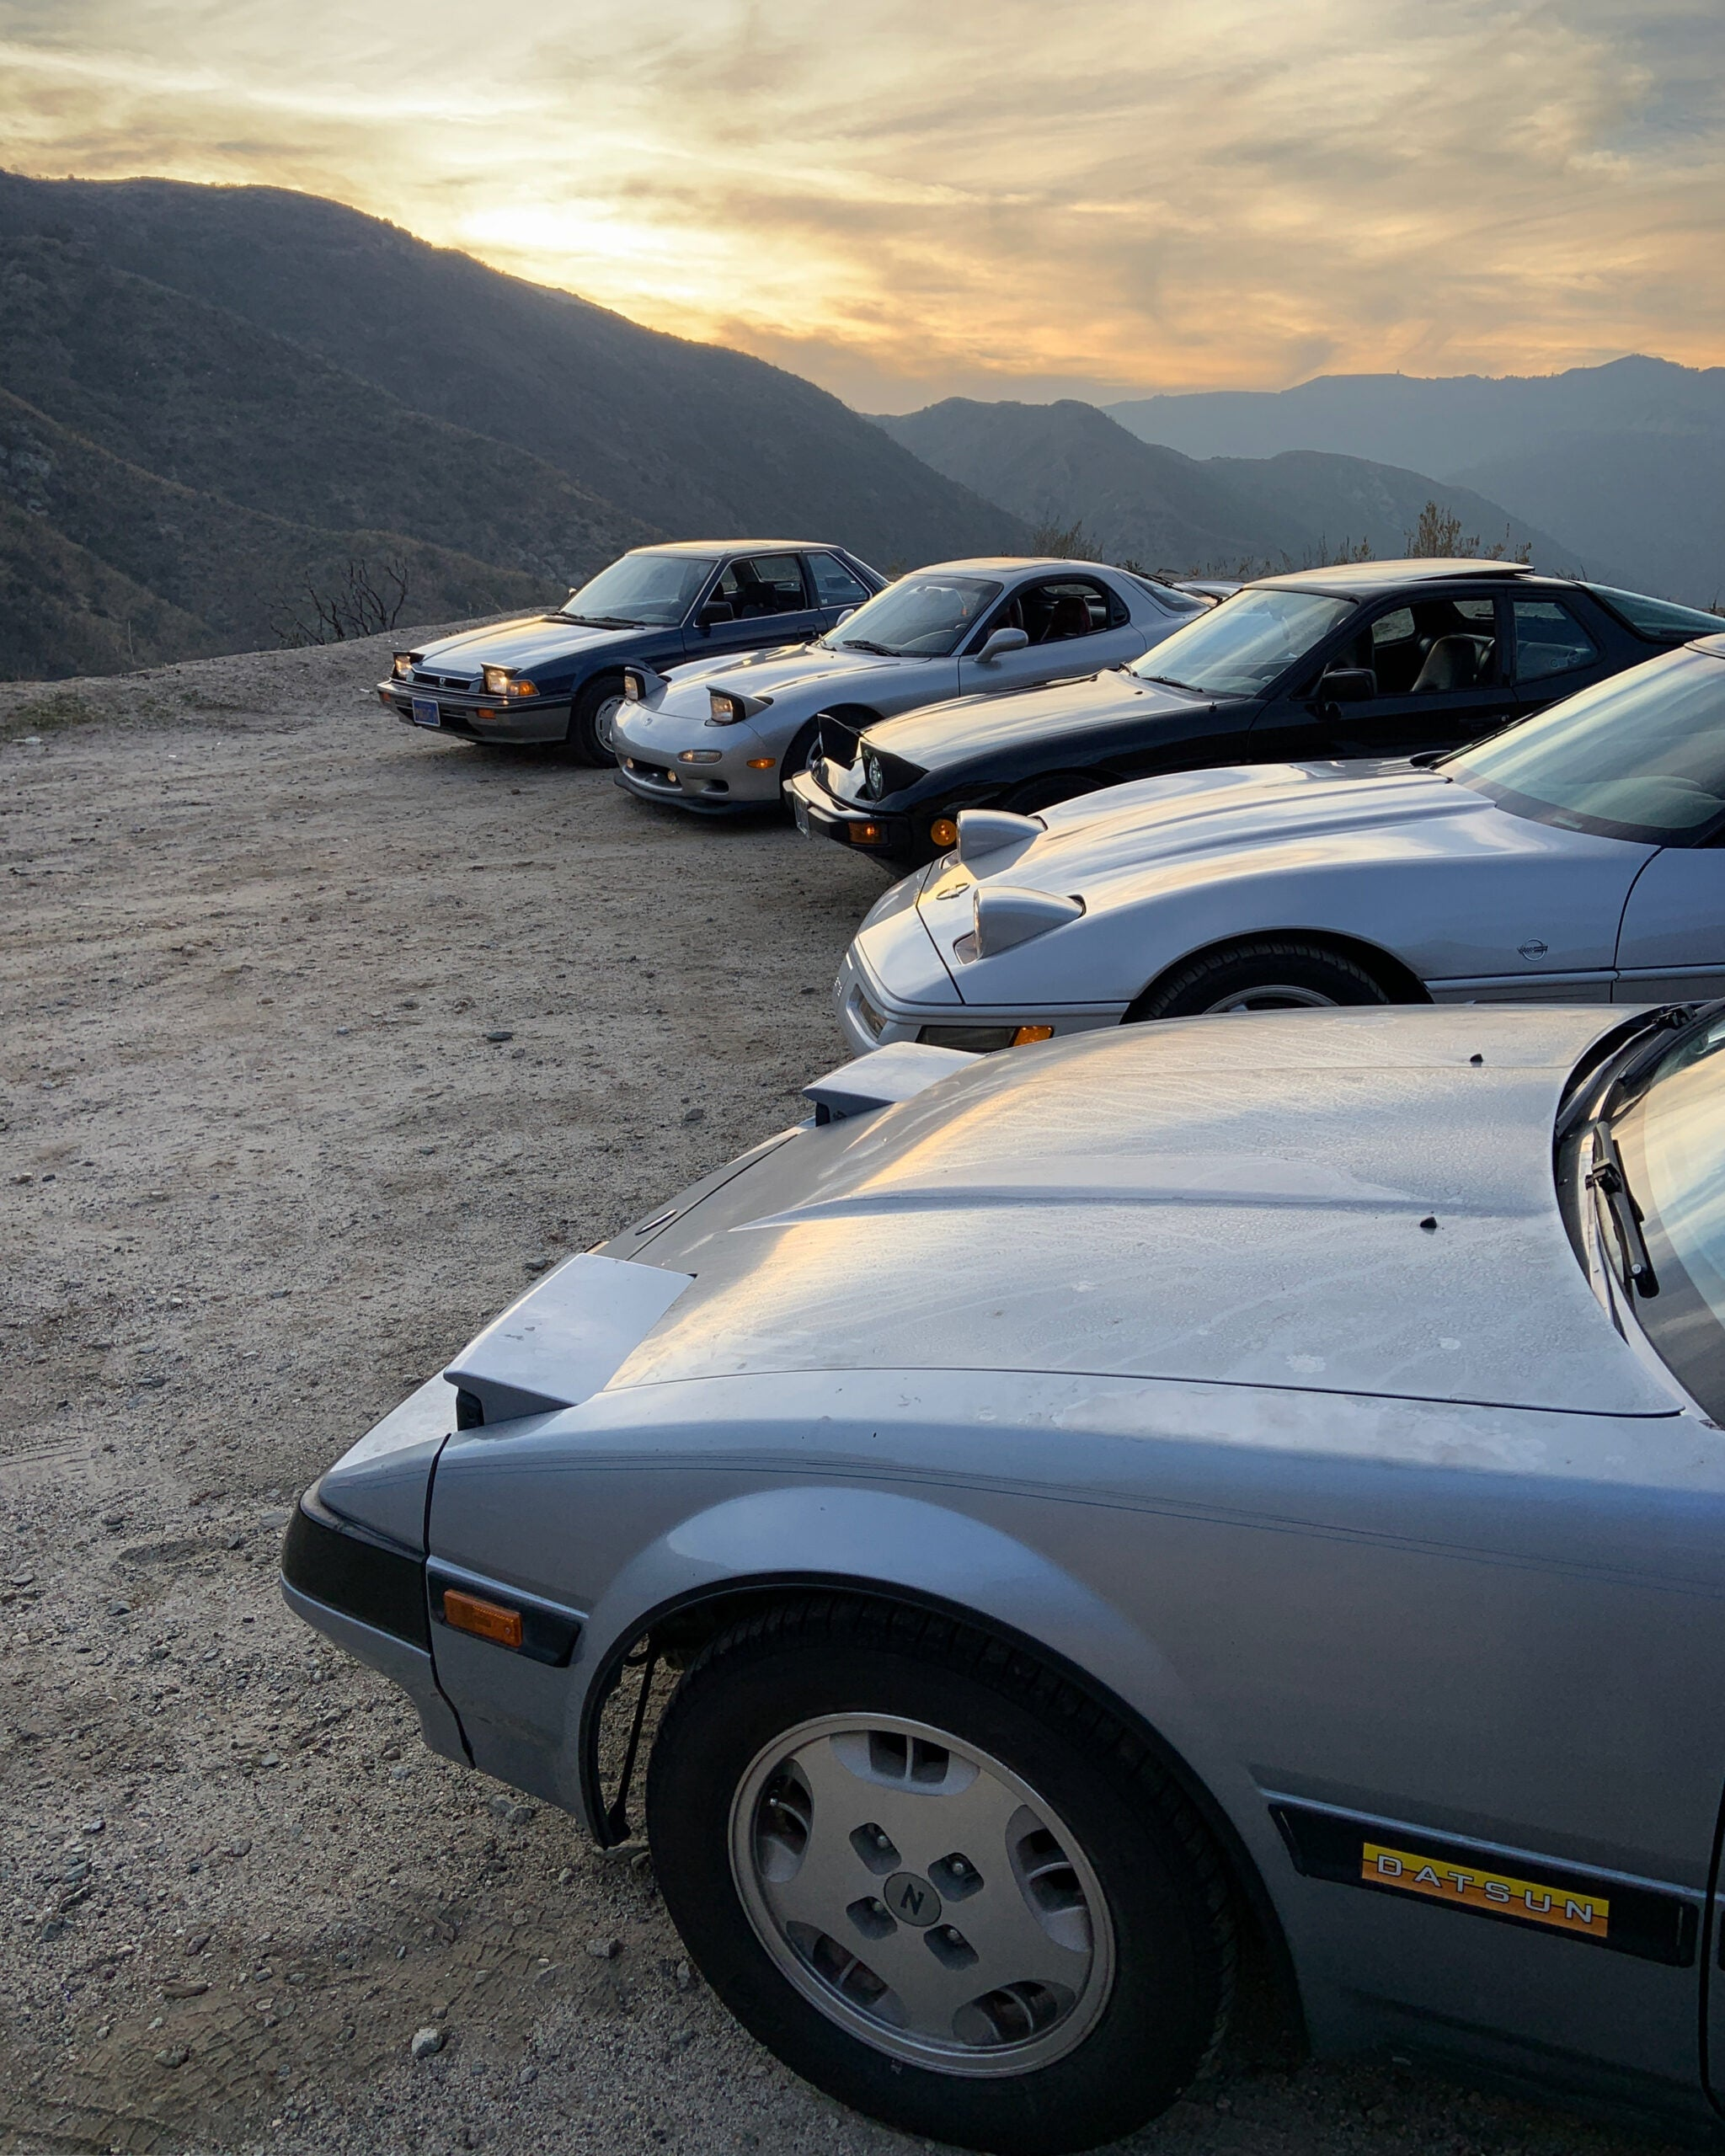 Cars parked on canyon road.